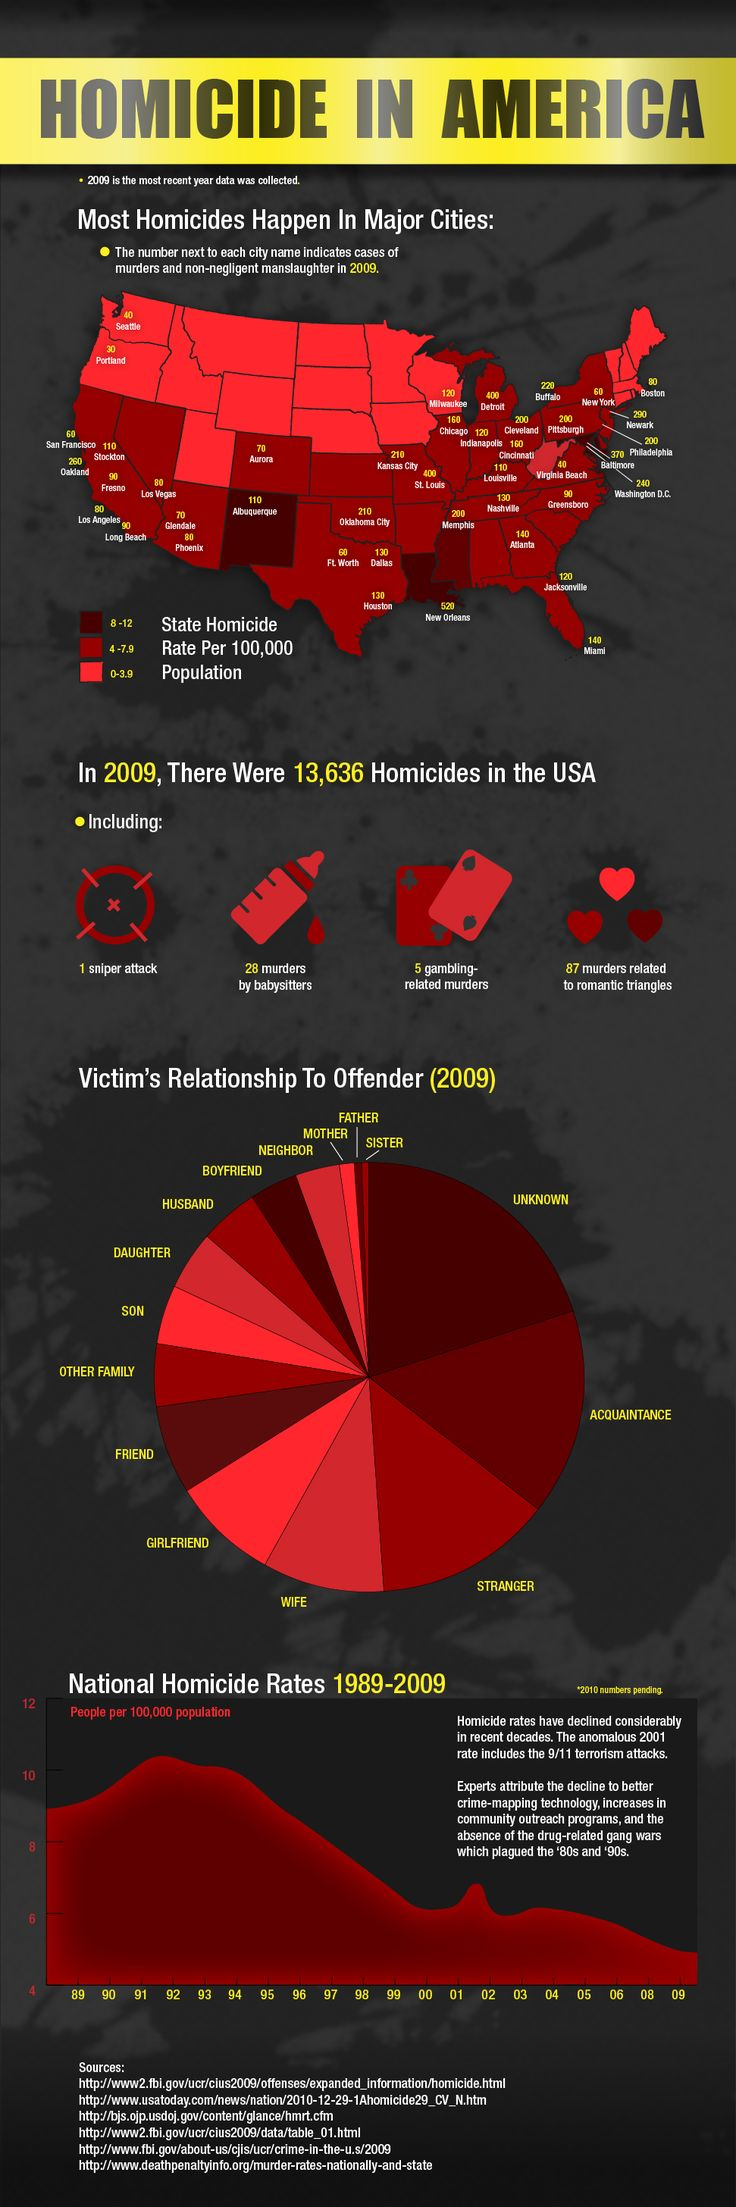 Homicide in America In 2009 there were 13,636 homicides in the USA these included 1 sniper attack, 28 murders by babysitters, 5 gambling-related murders, 87 murders related to romantic triangles. Many of these homicides were  committed by people who had relationships to the victim.